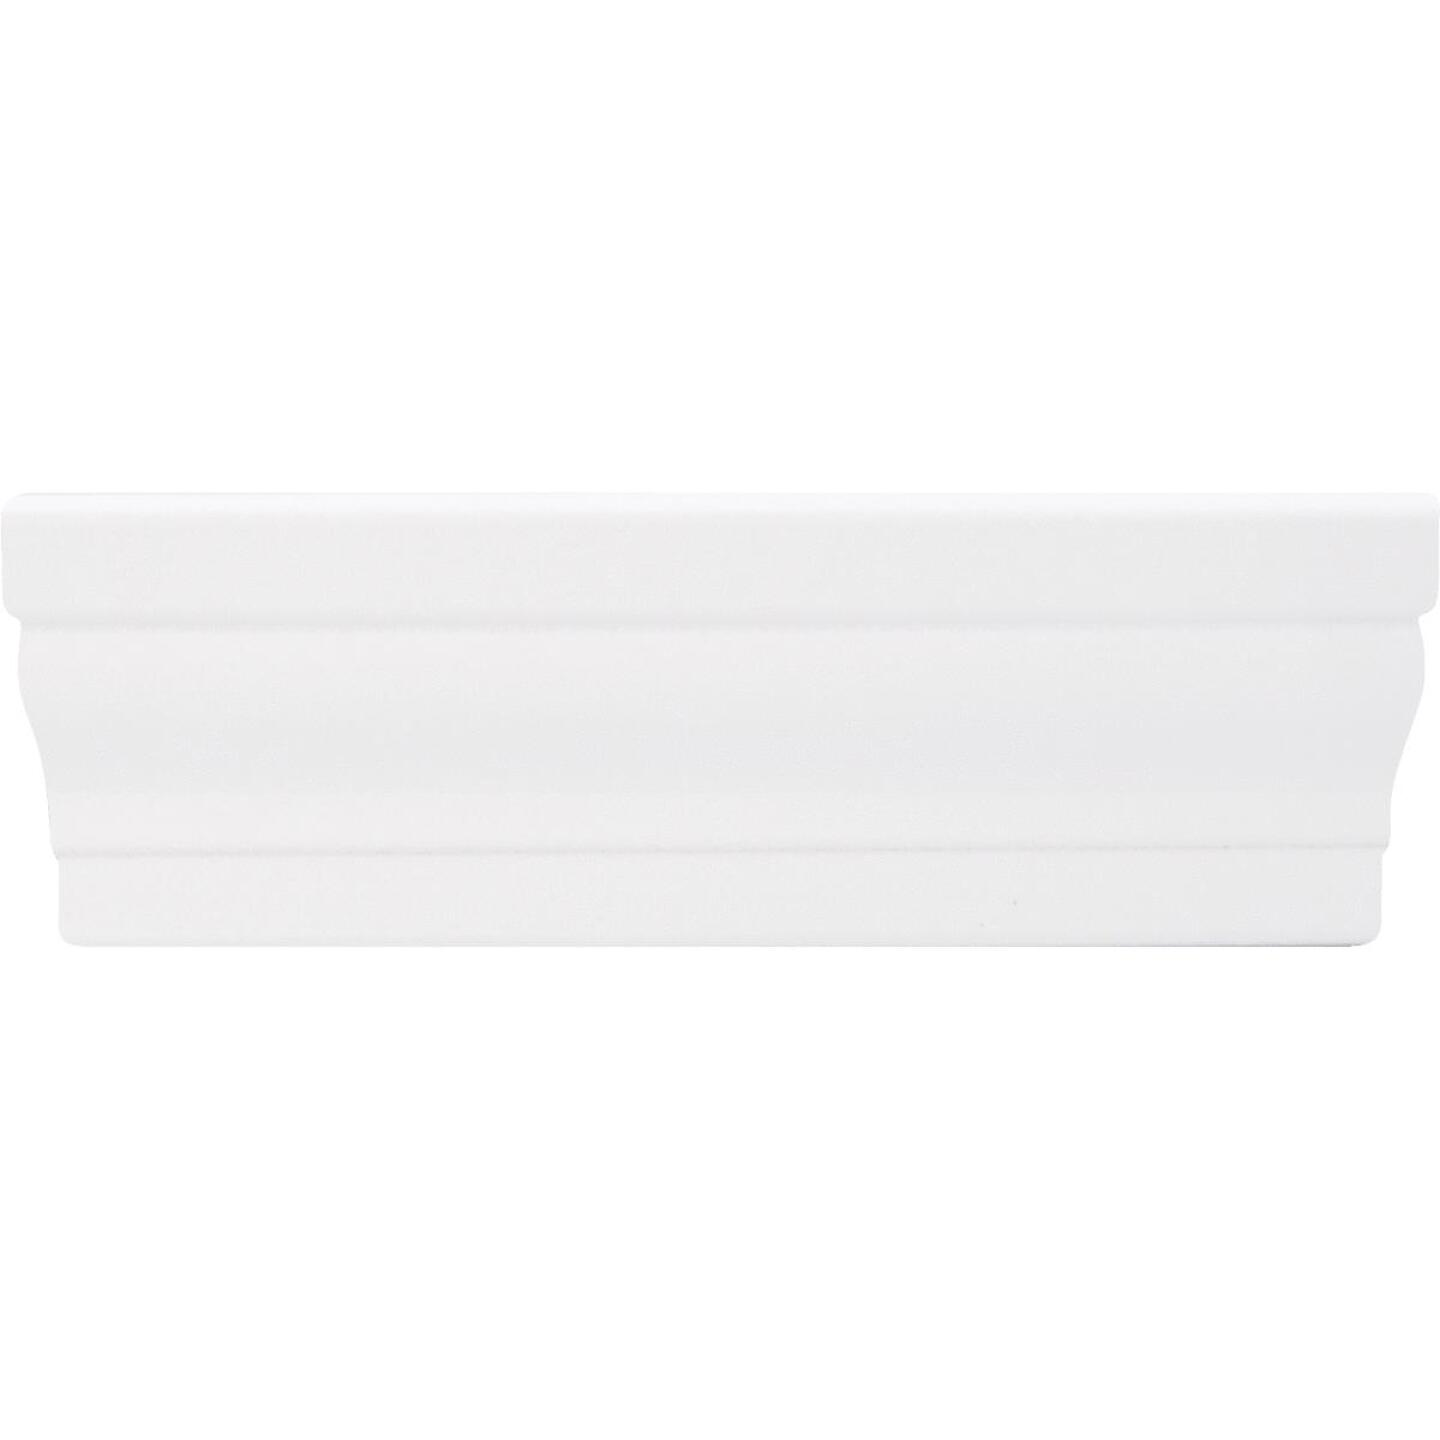 Inteplast Building Products 11/16 In. W. x 2-3/8 In. H. x 7 Ft. L. Crystal White Polystyrene Colonial Casing Image 3